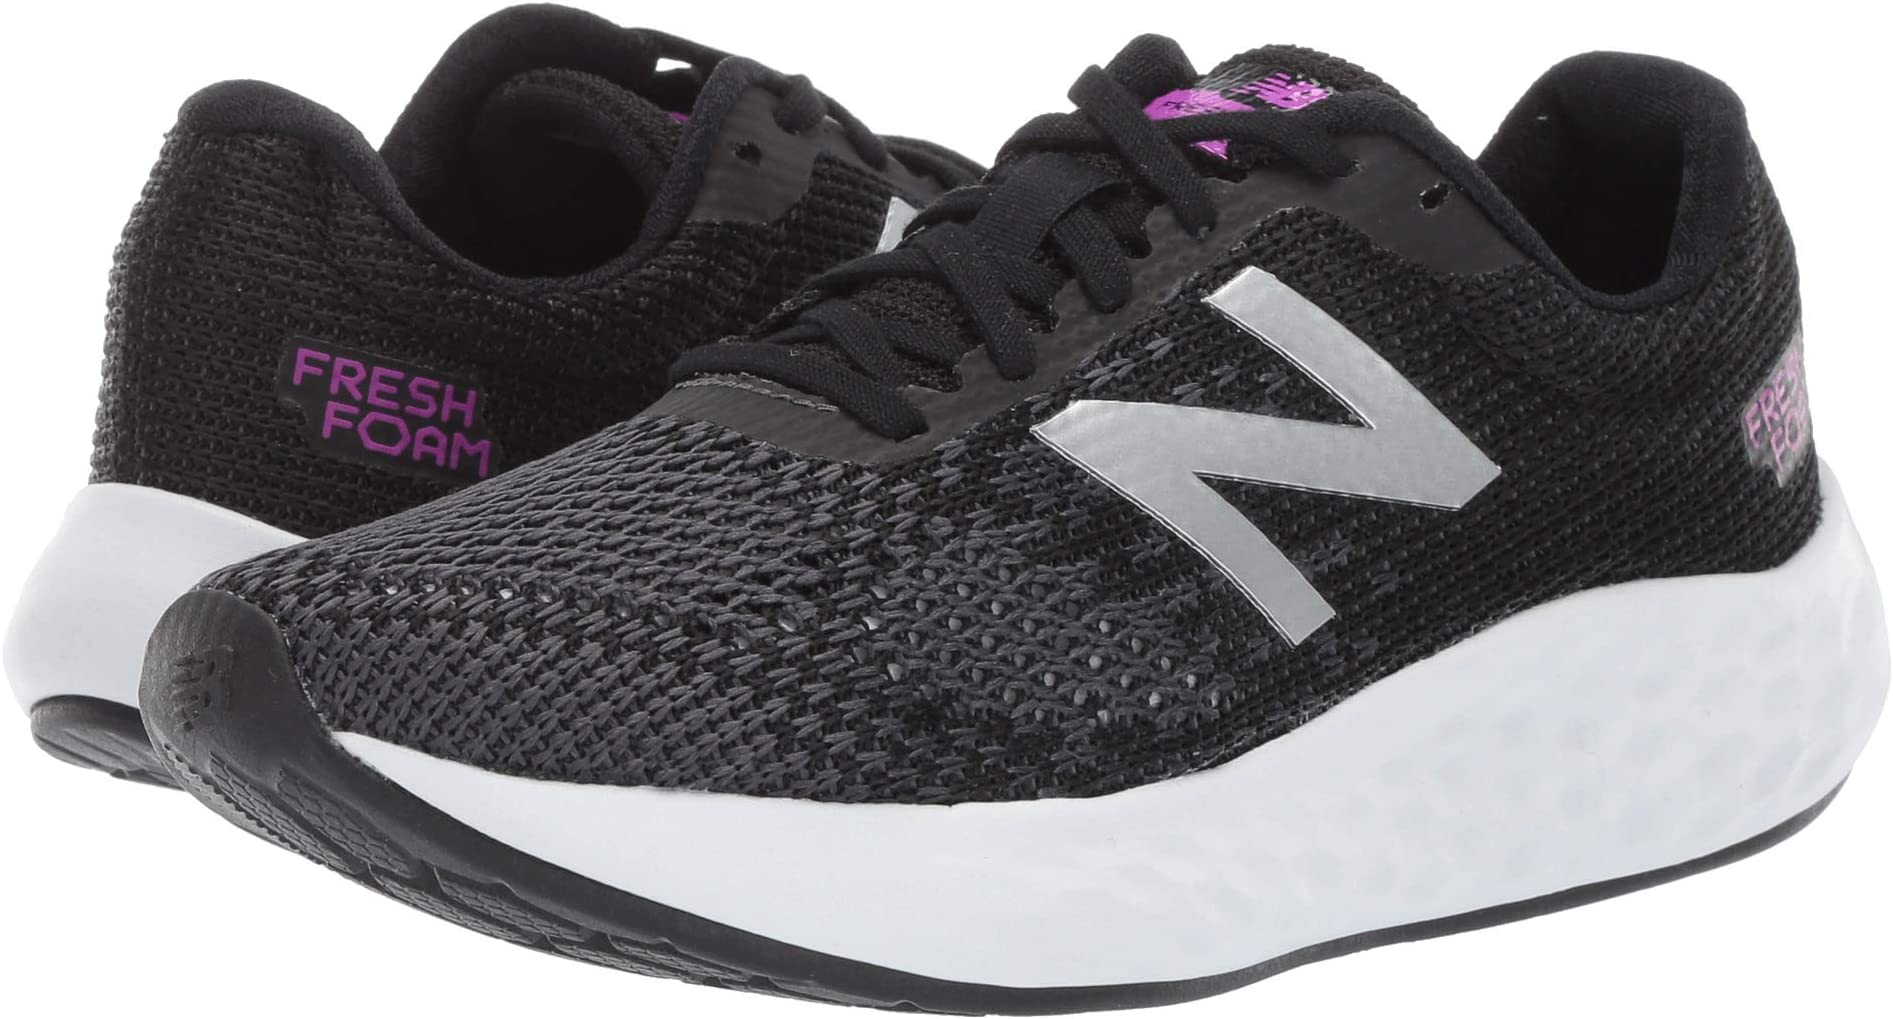 6dc434b8c6 New Balance Shoes